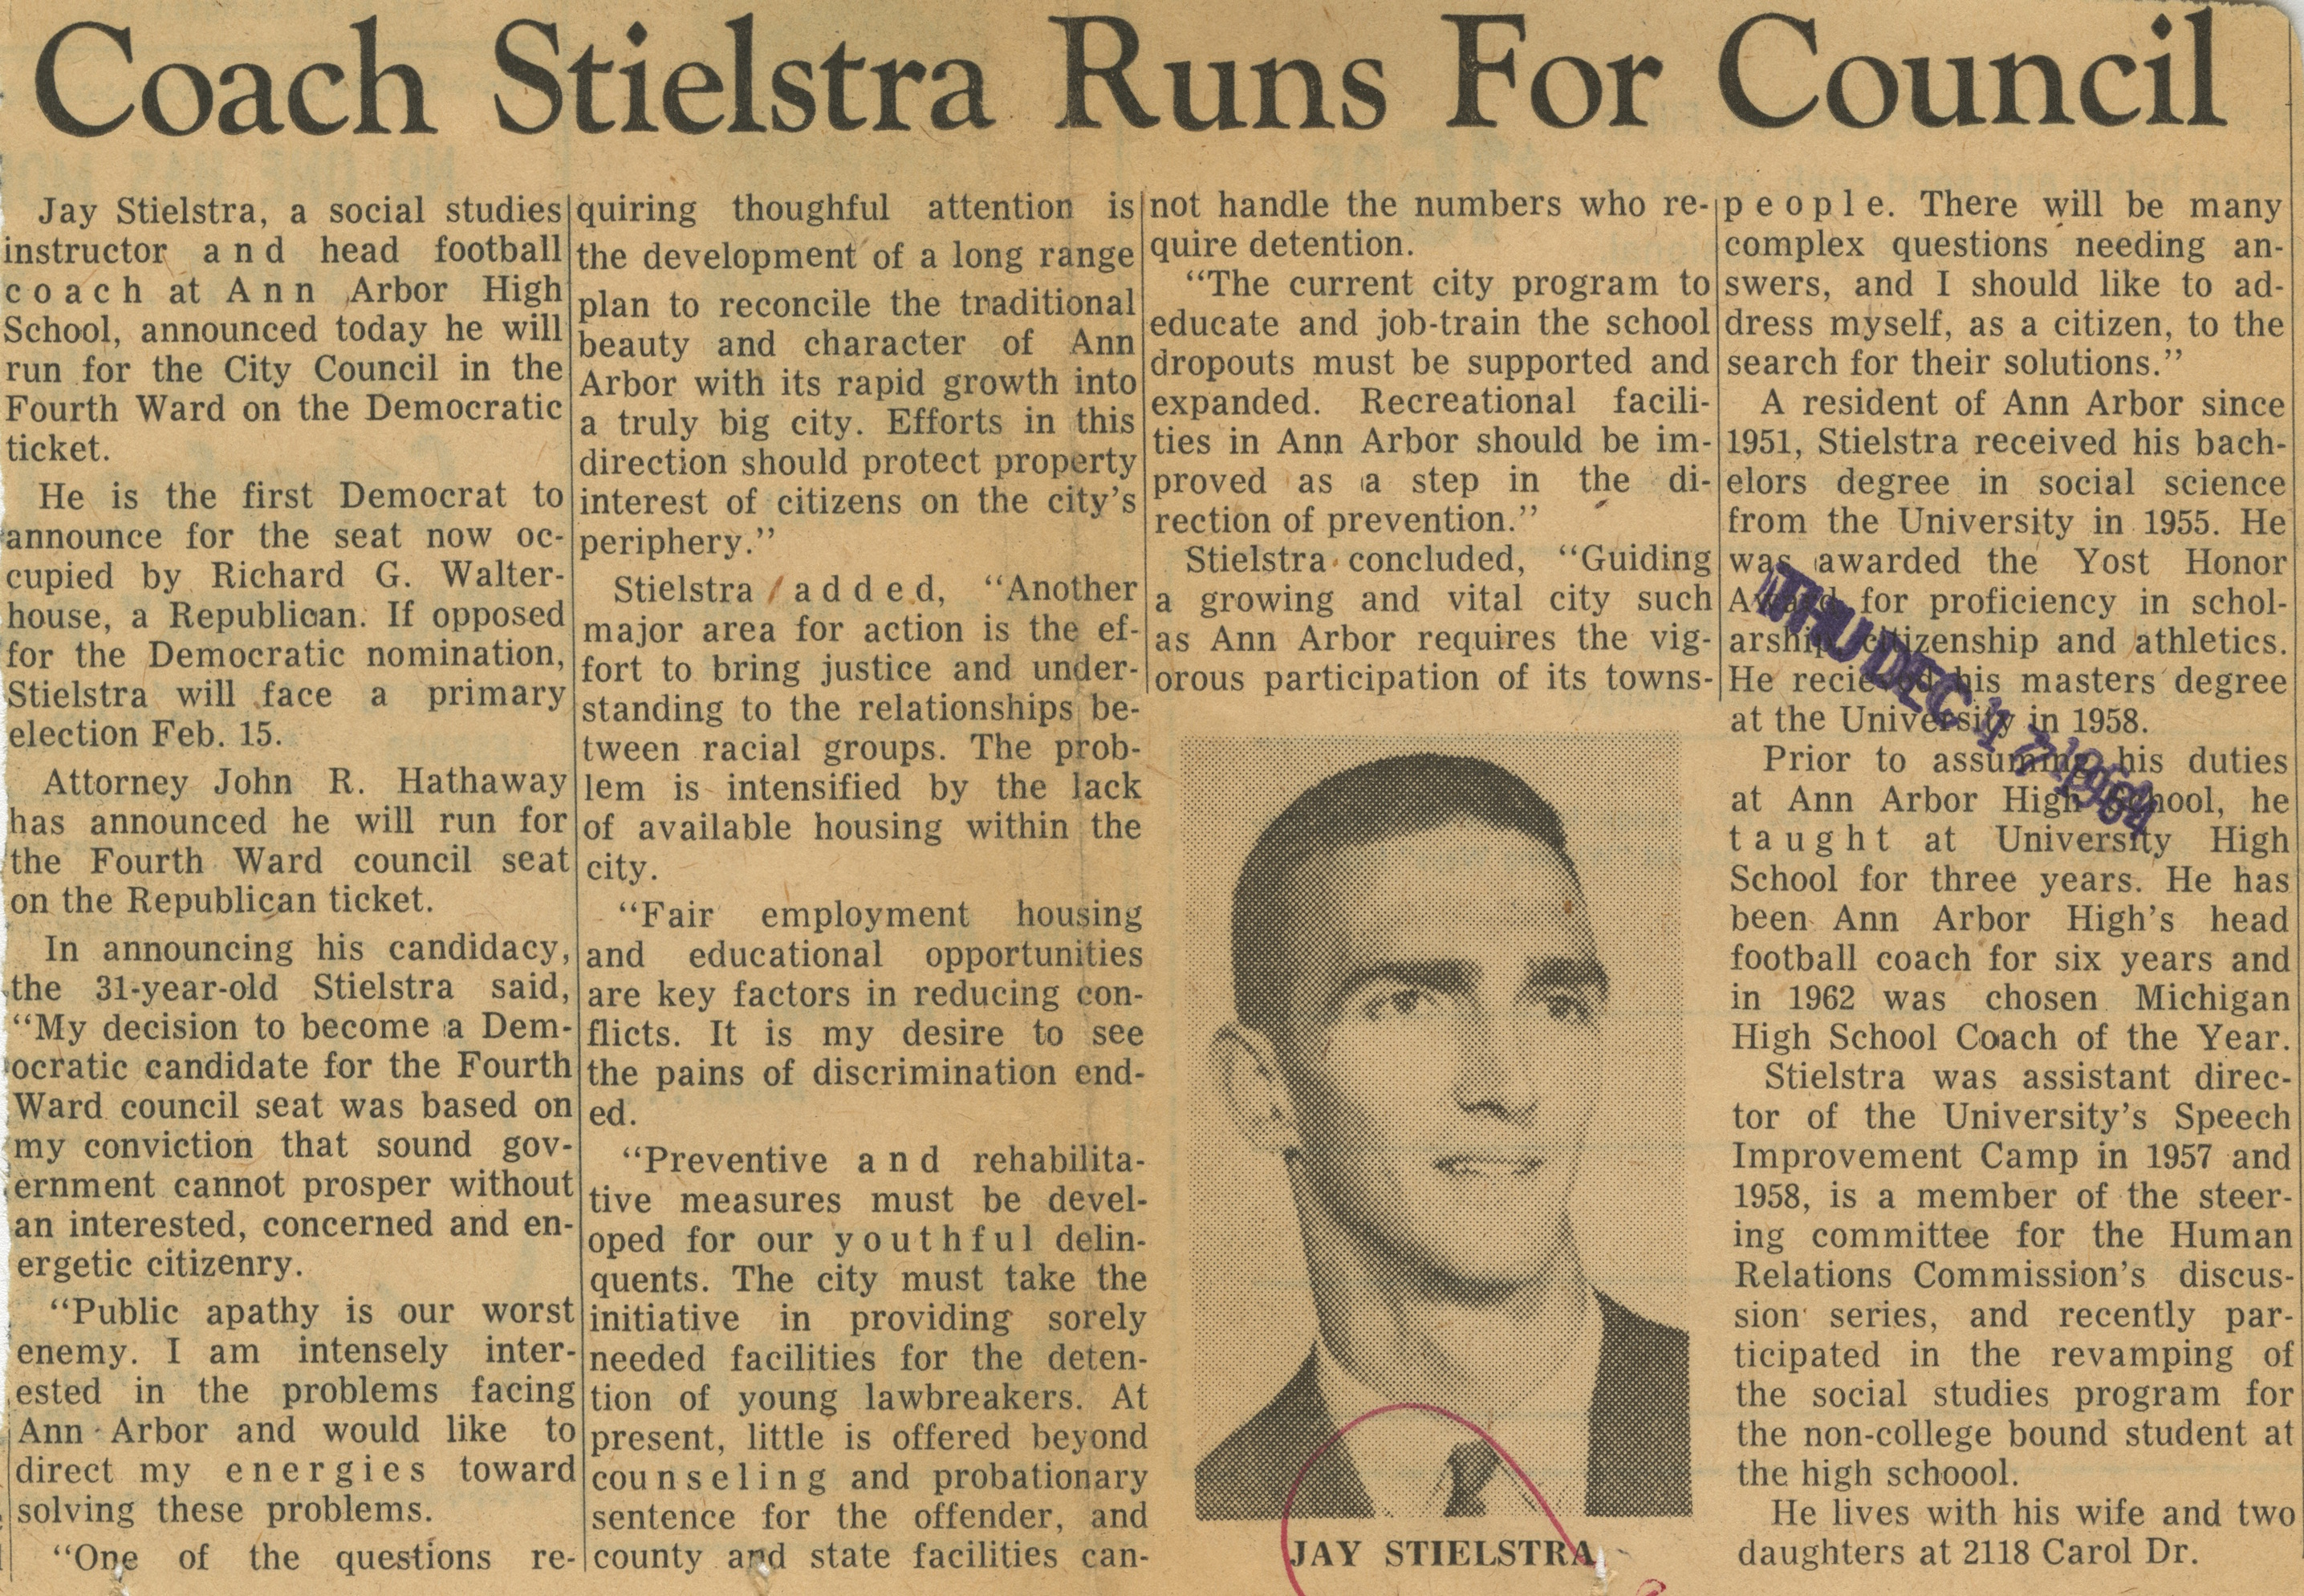 Coach Stielstra Runs For Council image